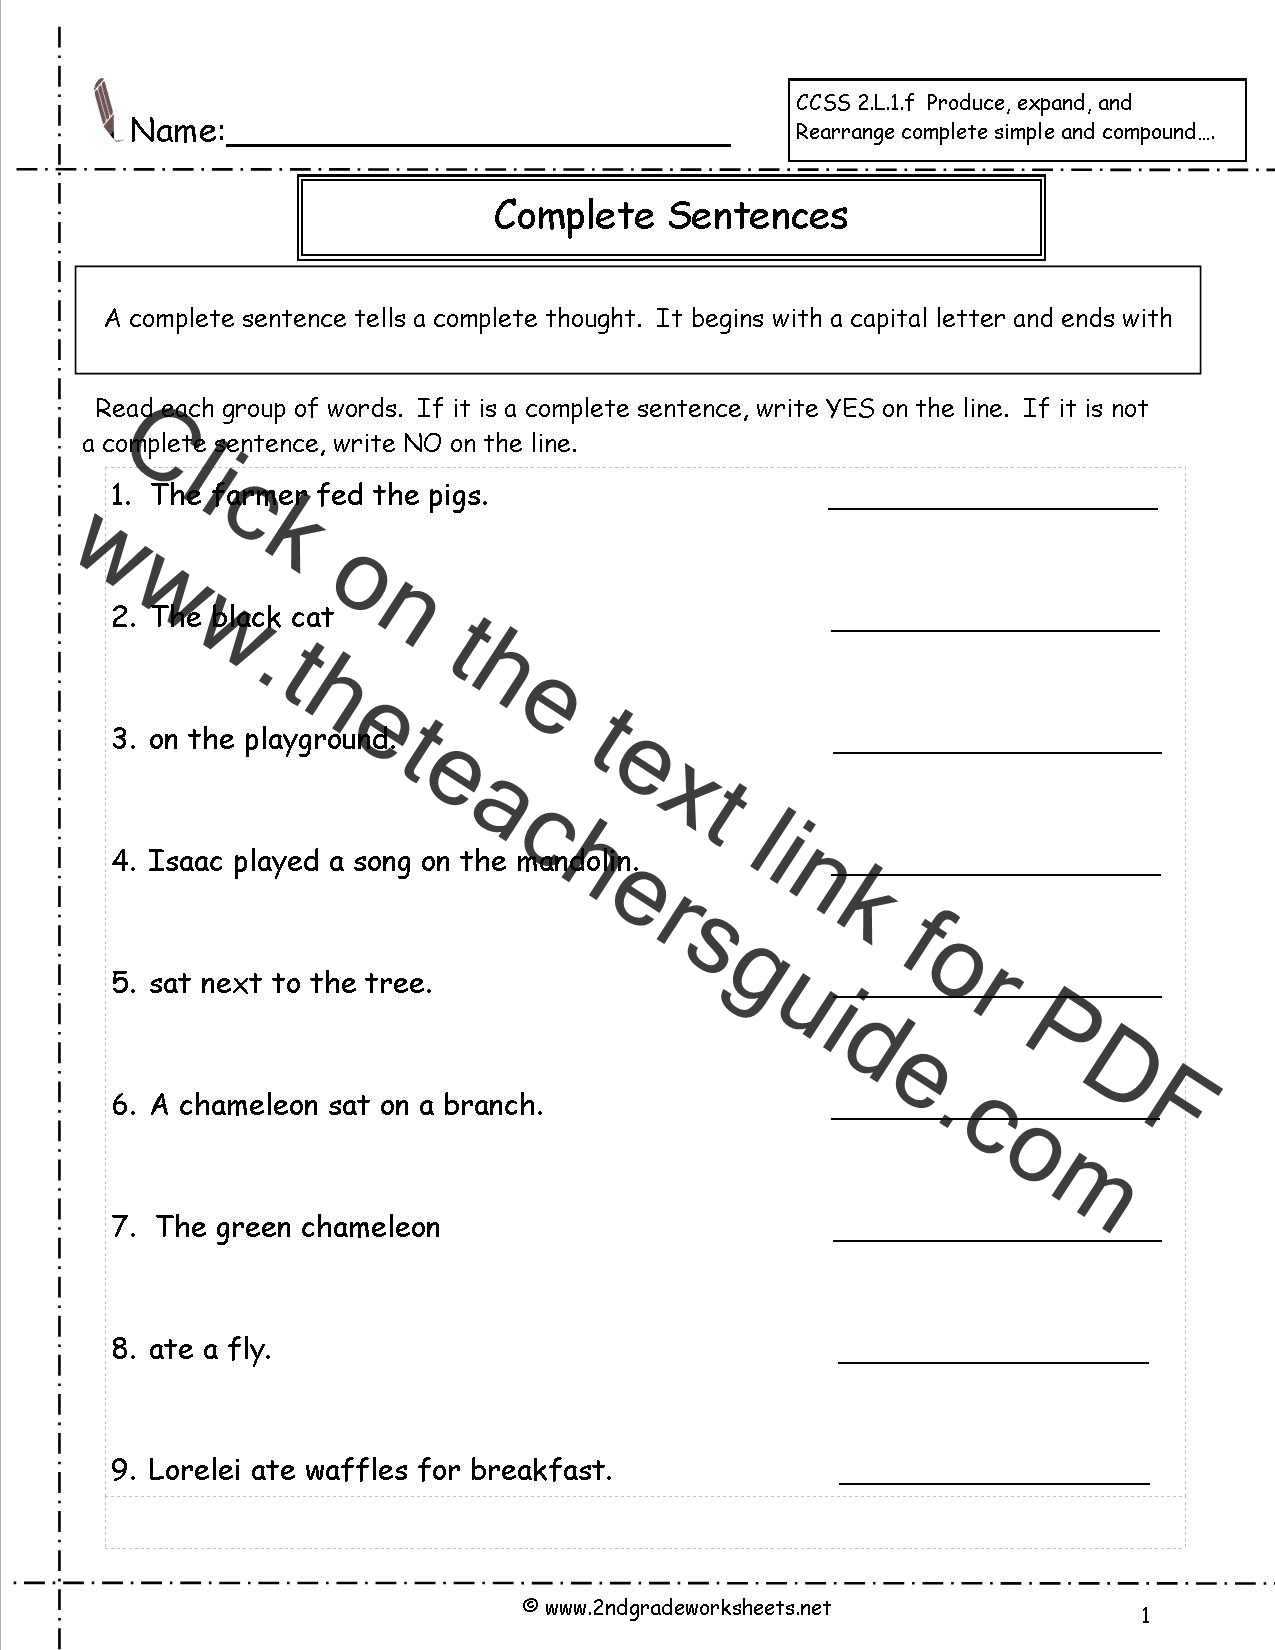 Worksheets Simple And Compound Sentences Worksheets second grade sentences worksheets ccss 2 l 1 f complete sentence worksheet